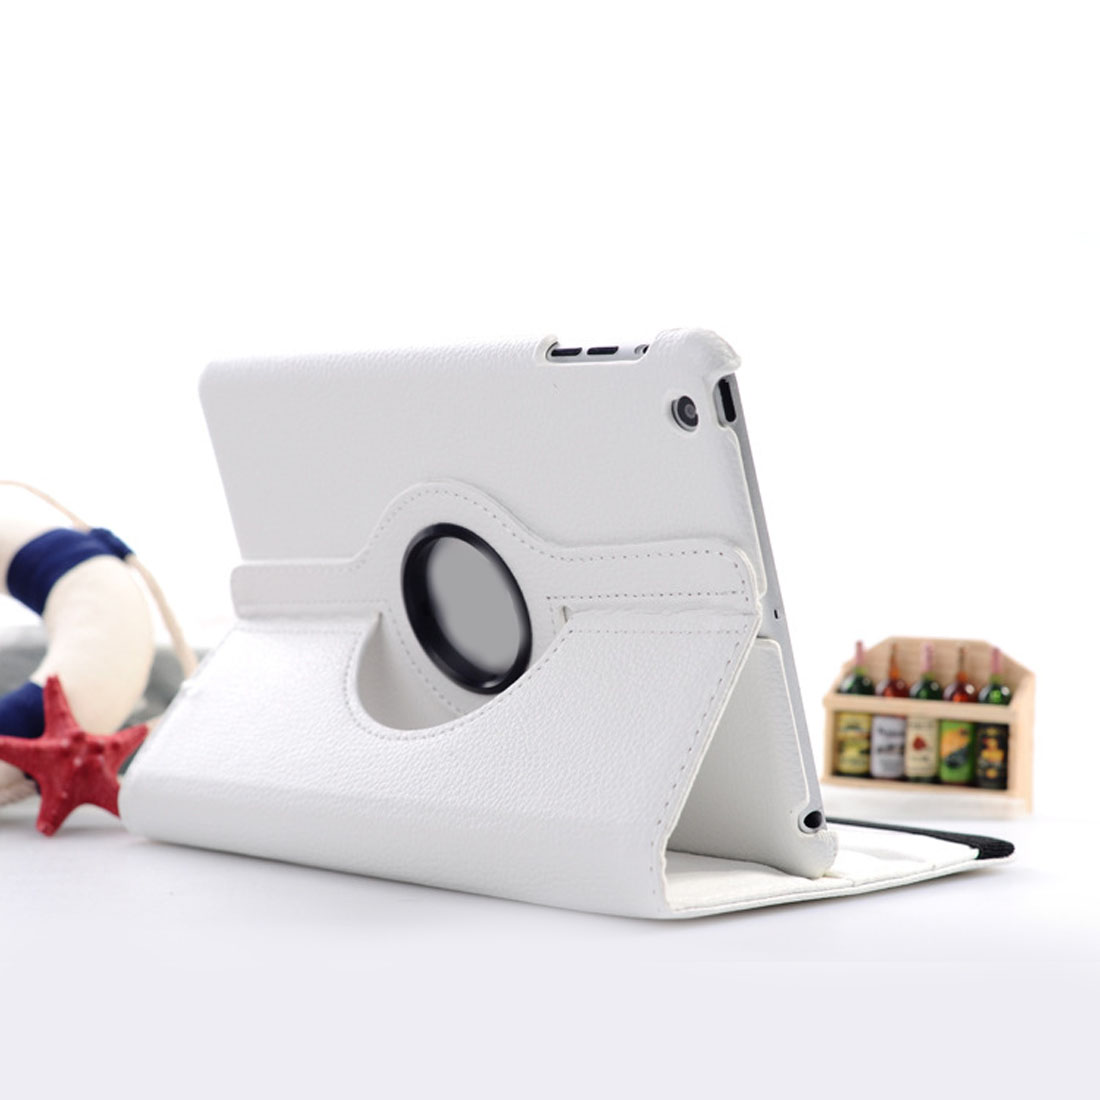 Centechia New Arrival For Apple Ipad Air Tablet Case 360 Degree Rotating Pu Leather Stand Flip Folio Screen Prot